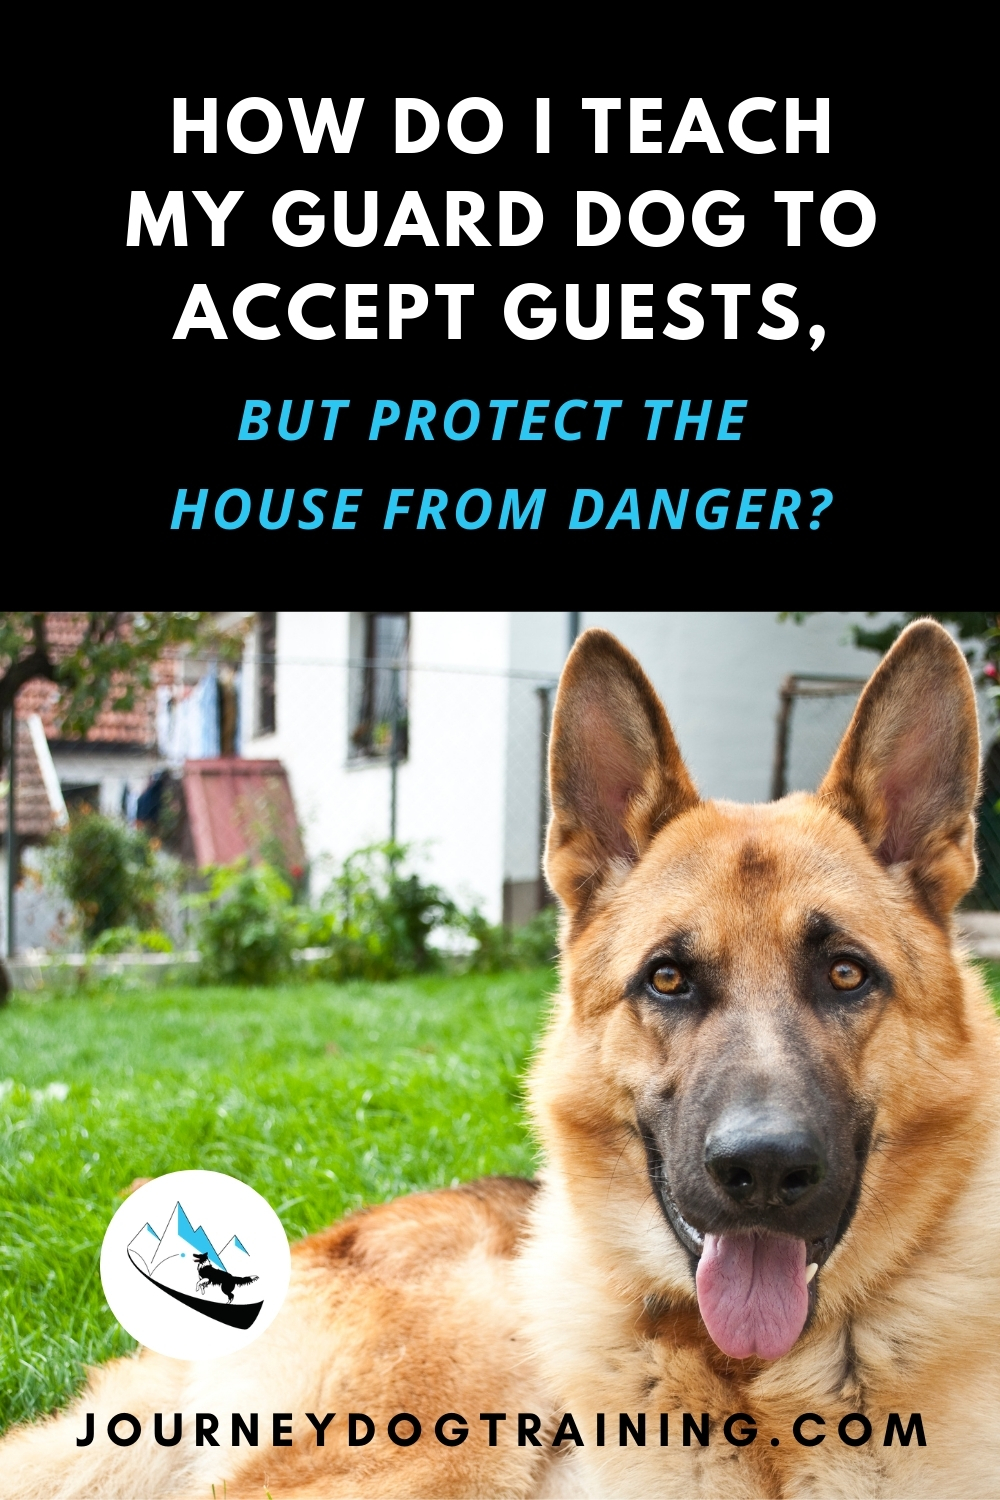 How Do I Teach My Guard Dog to Accept Guests, But Protect the House From Danger? Many of us like the idea of a guard dog who helps to keep the house safe. What better deterrent from criminals than a big, scary guard dog with a booming bark? We want a guard dog who can hold down the fort while we're gone or sleeping, but who will also happily accept family and friends in the home, cuddle with our nephews, and politely greet strangers on walks. https://journeydogtraining.com/guard-dog-training/